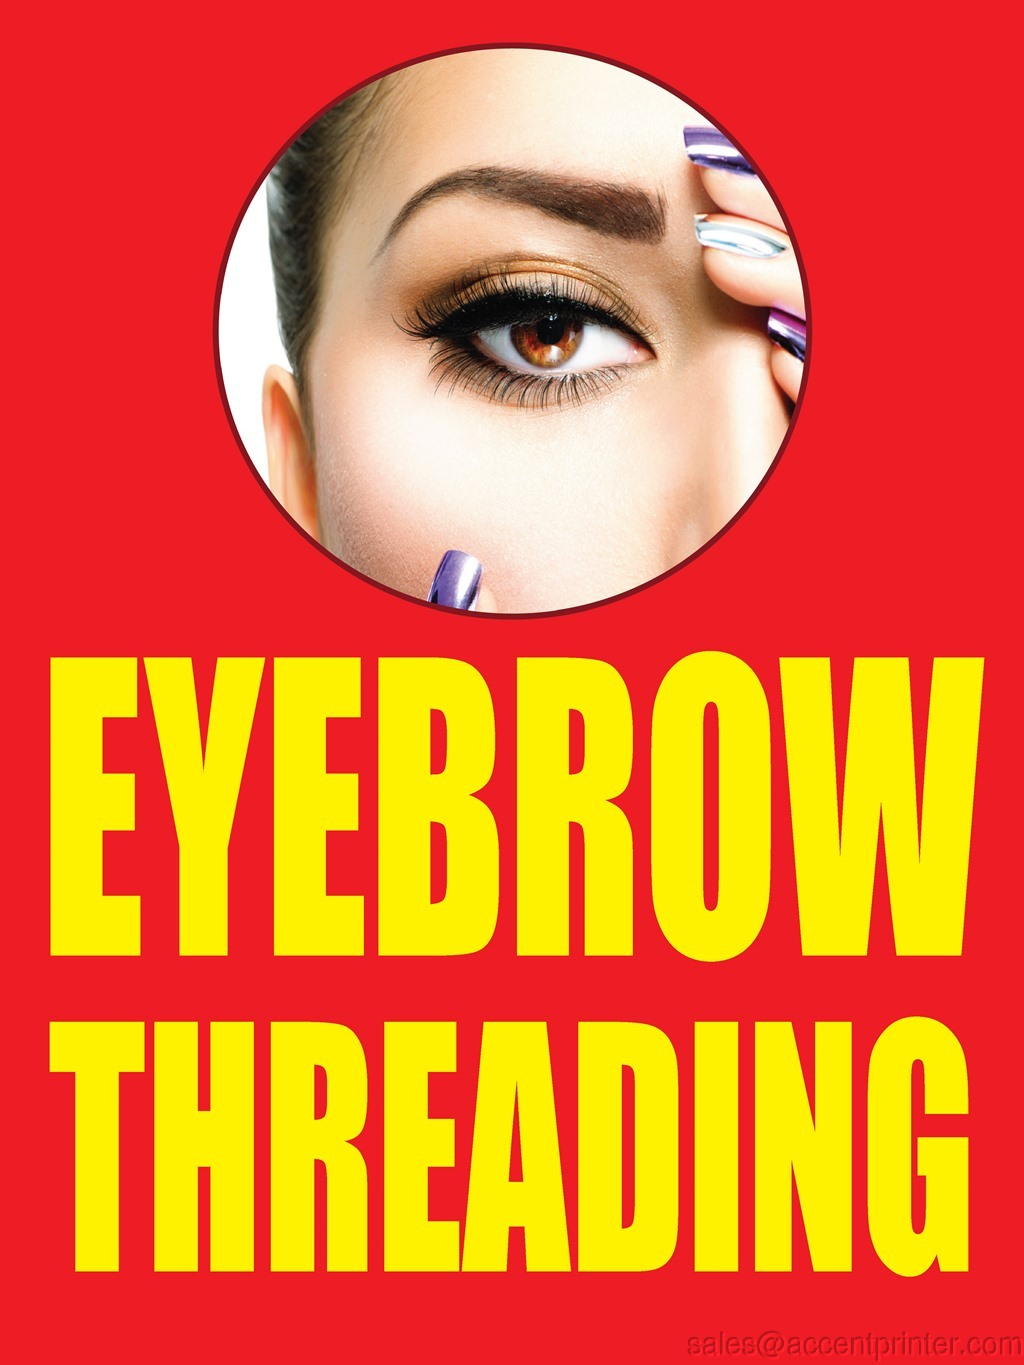 Eyebrow Threading Storefront Window Display Sign 18w X 24h Full